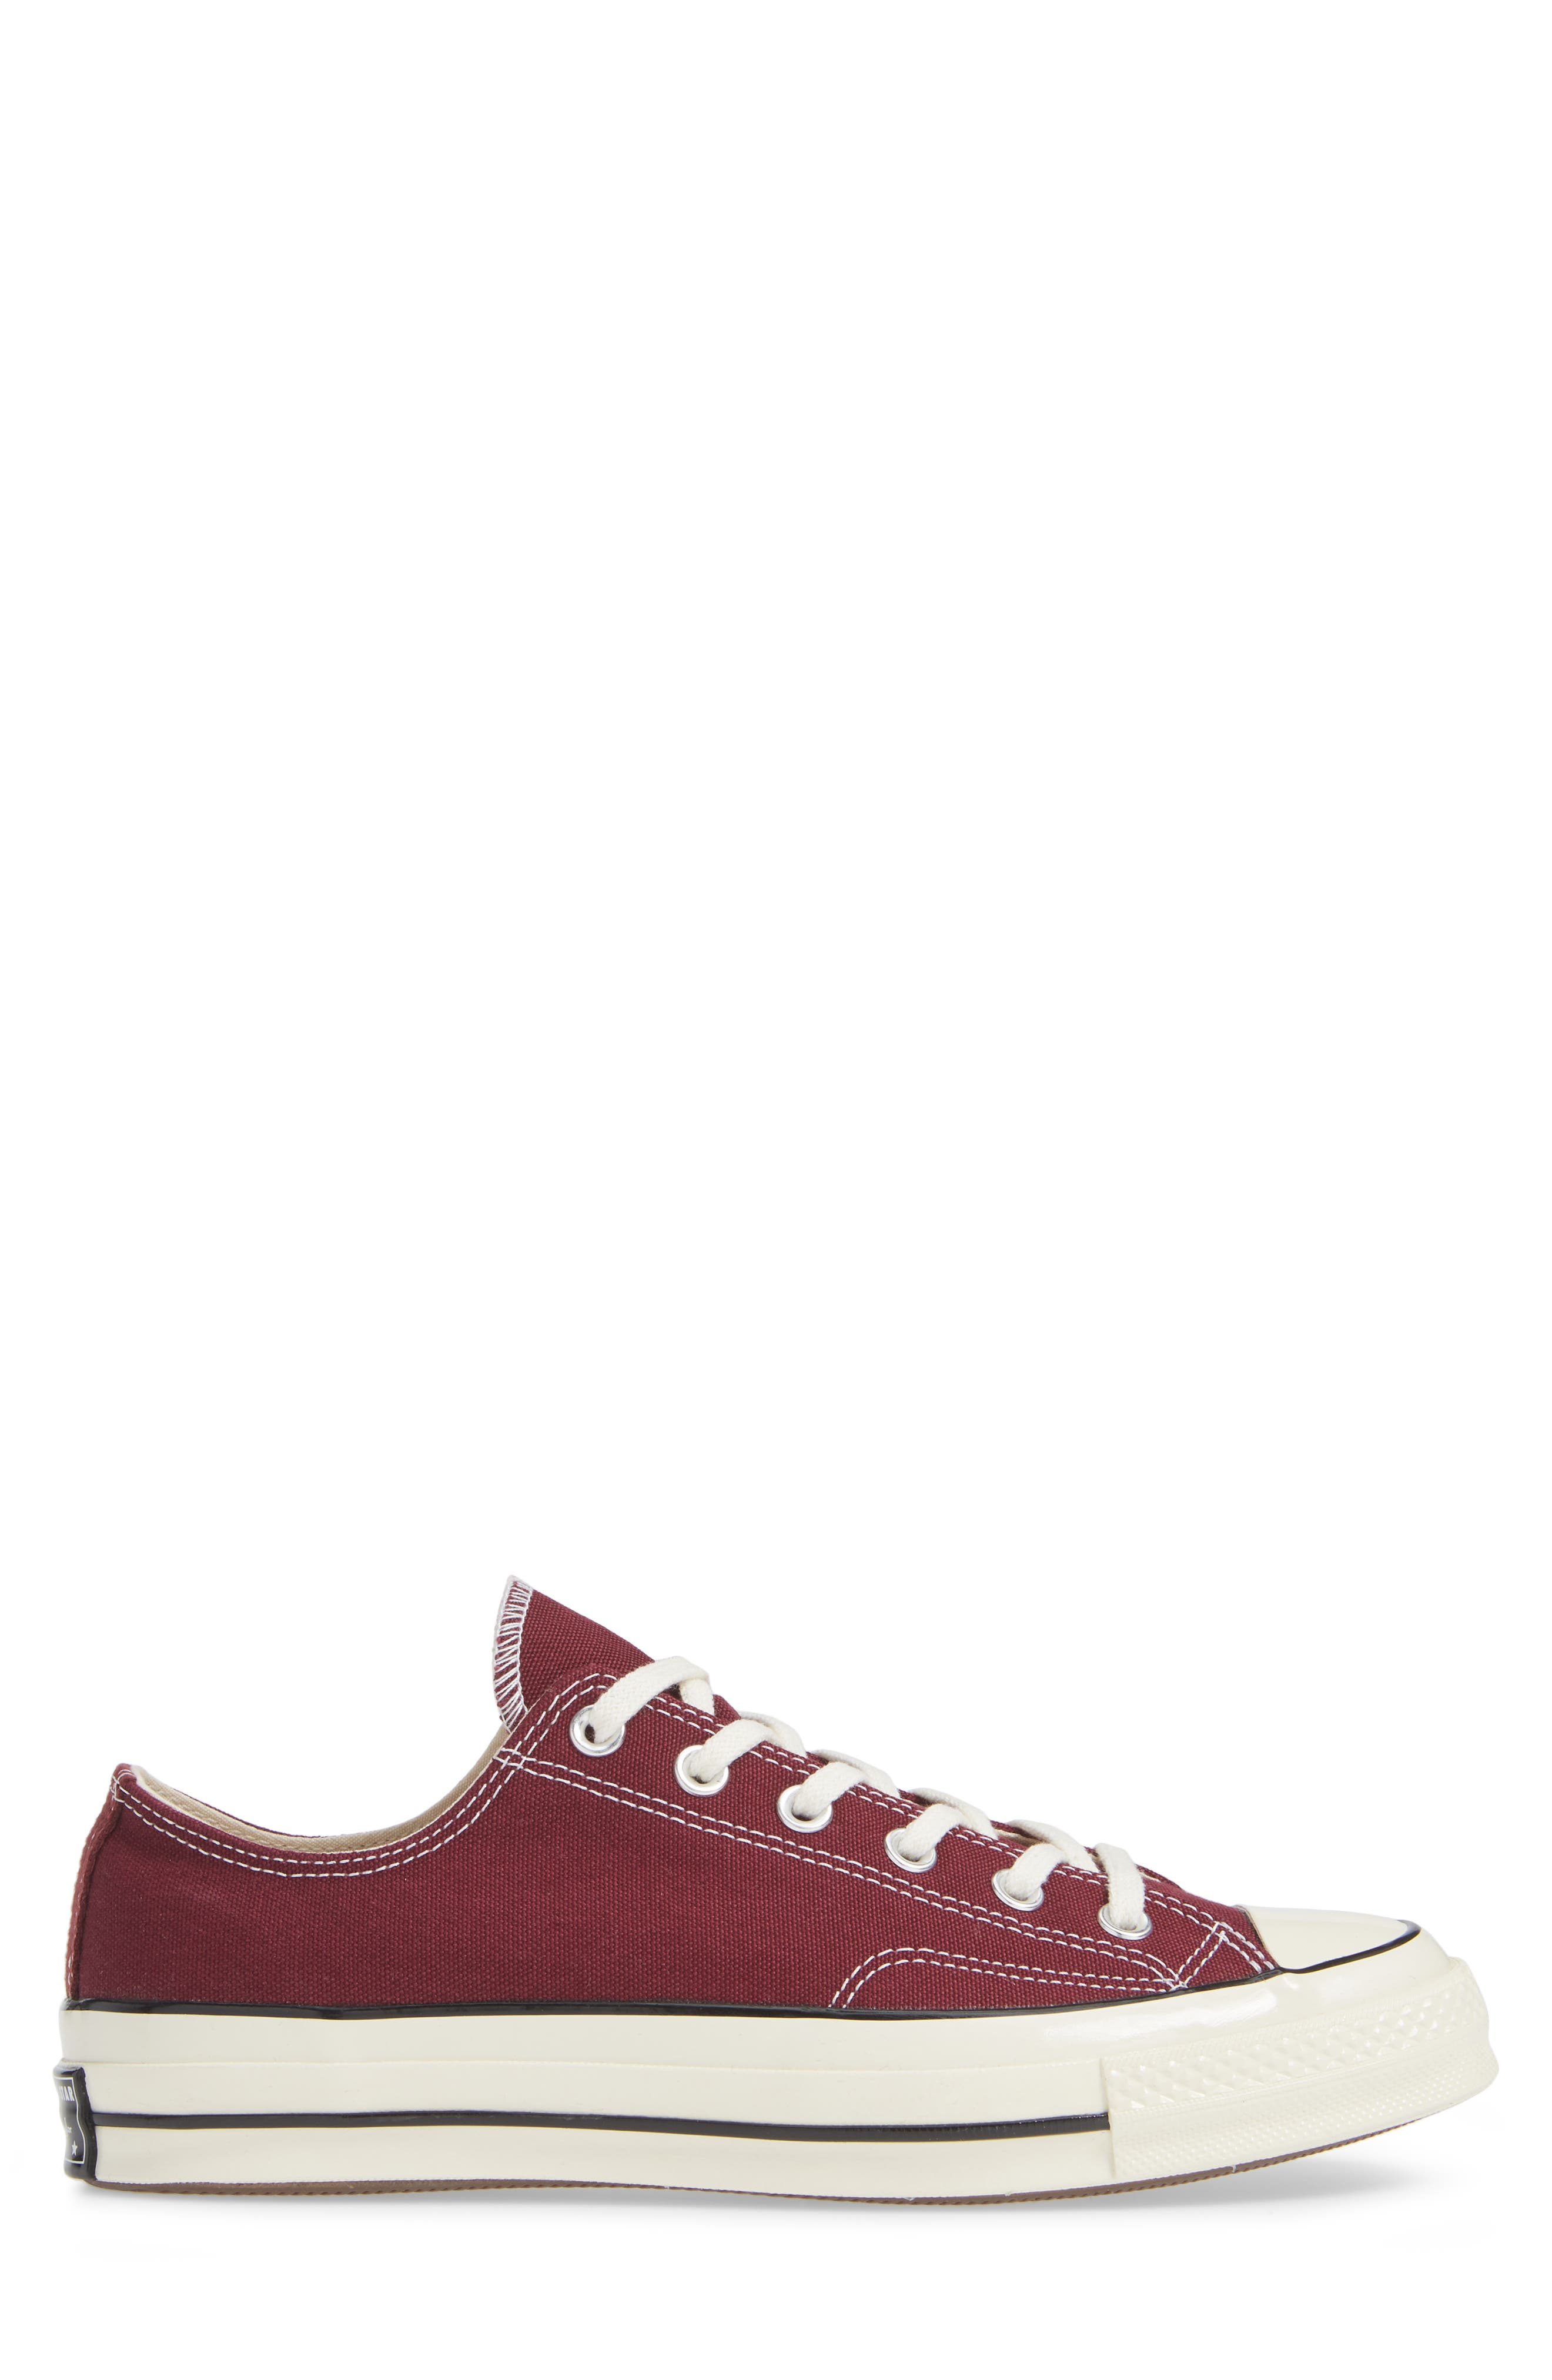 Chuck Taylor<sup>®</sup> All Star<sup>®</sup> 70 Low Top Sneaker,                             Alternate thumbnail 3, color,                             BURGUNDY